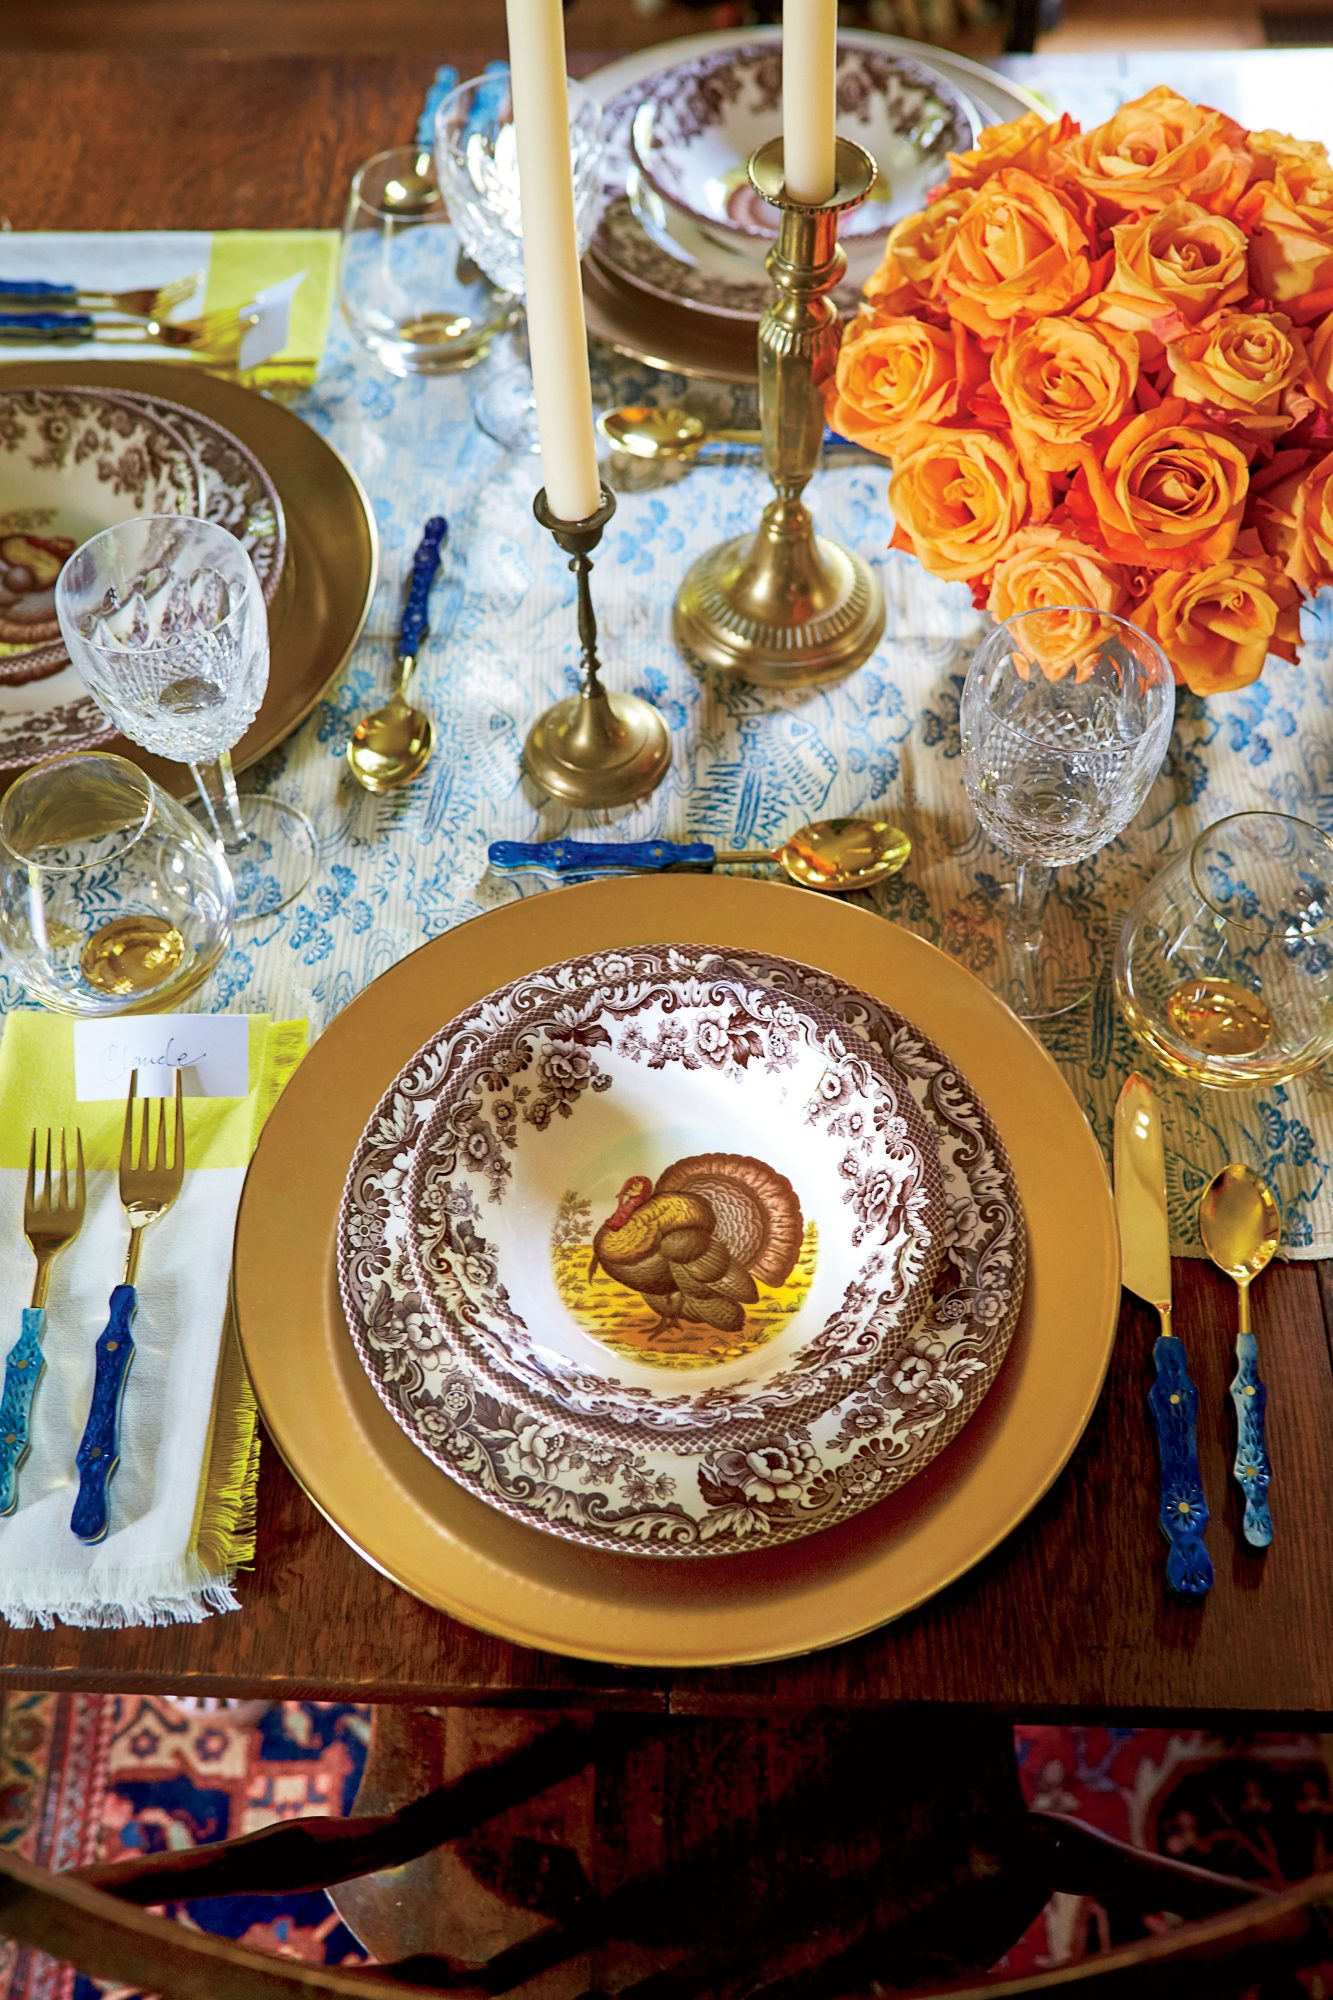 Thanksgiving Table Setting with Turkey Plates